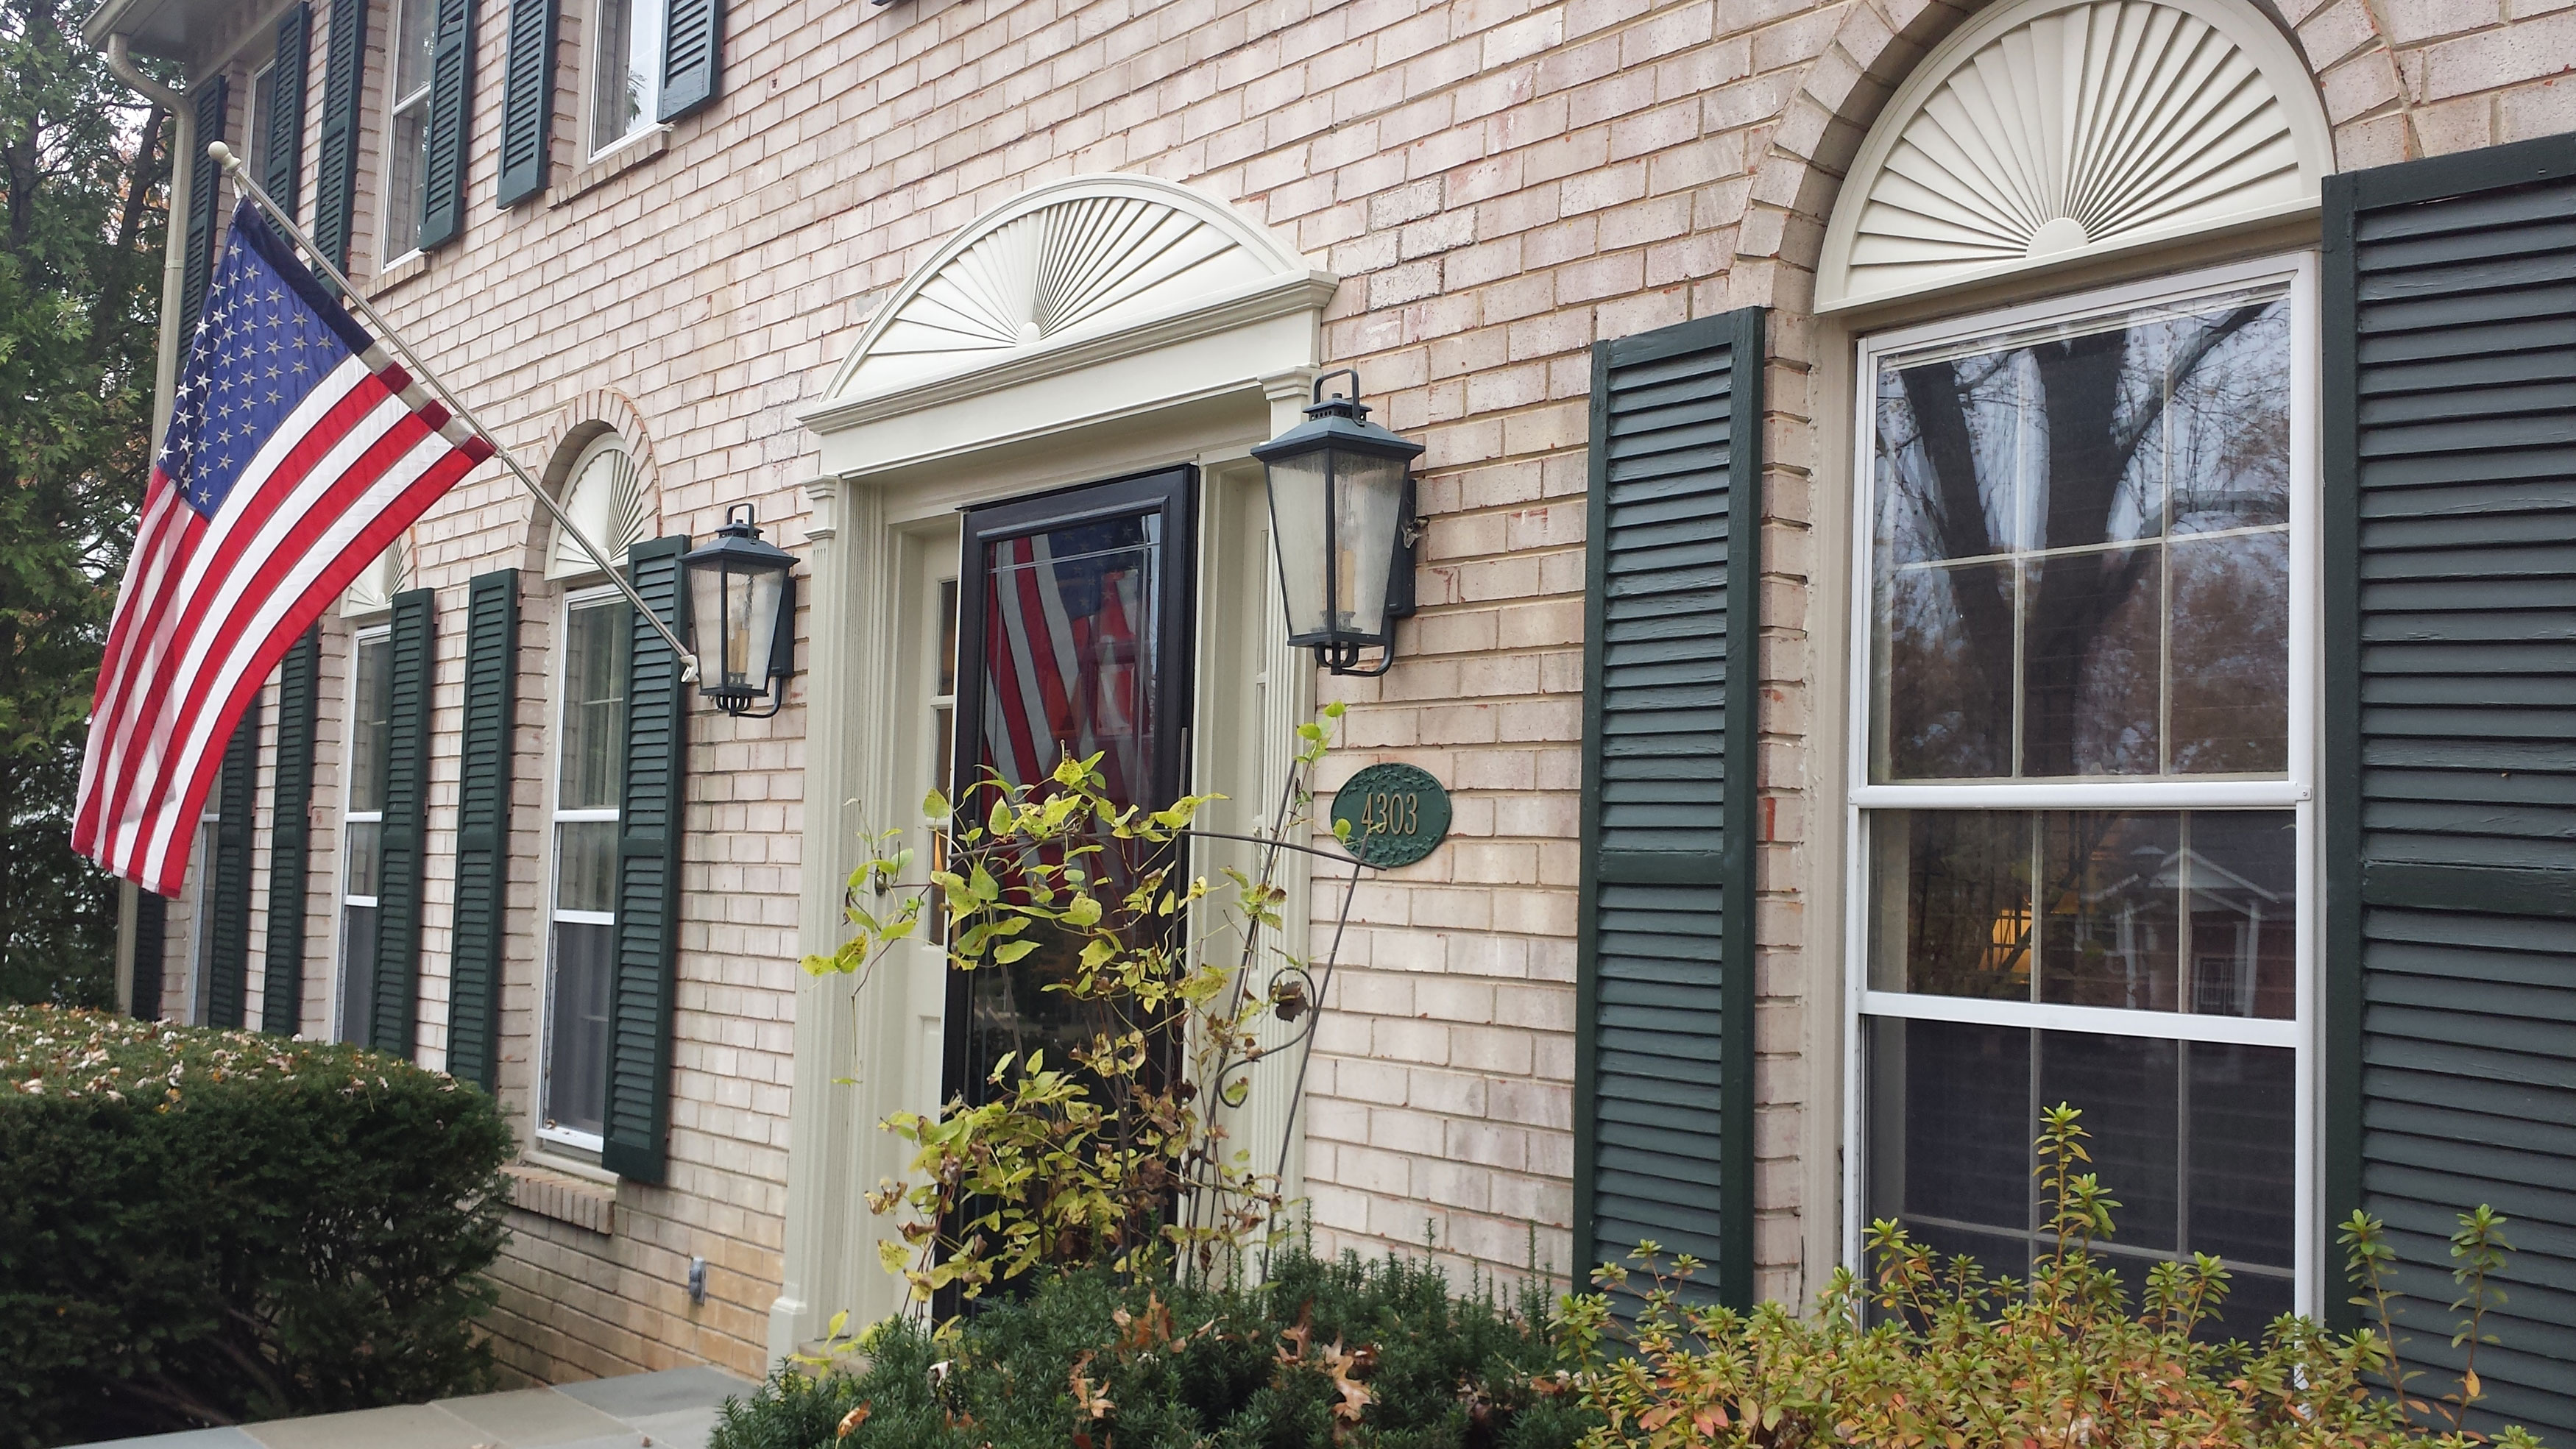 Door and window decor project pictures architectural depot - Decorative trim above exterior windows ...